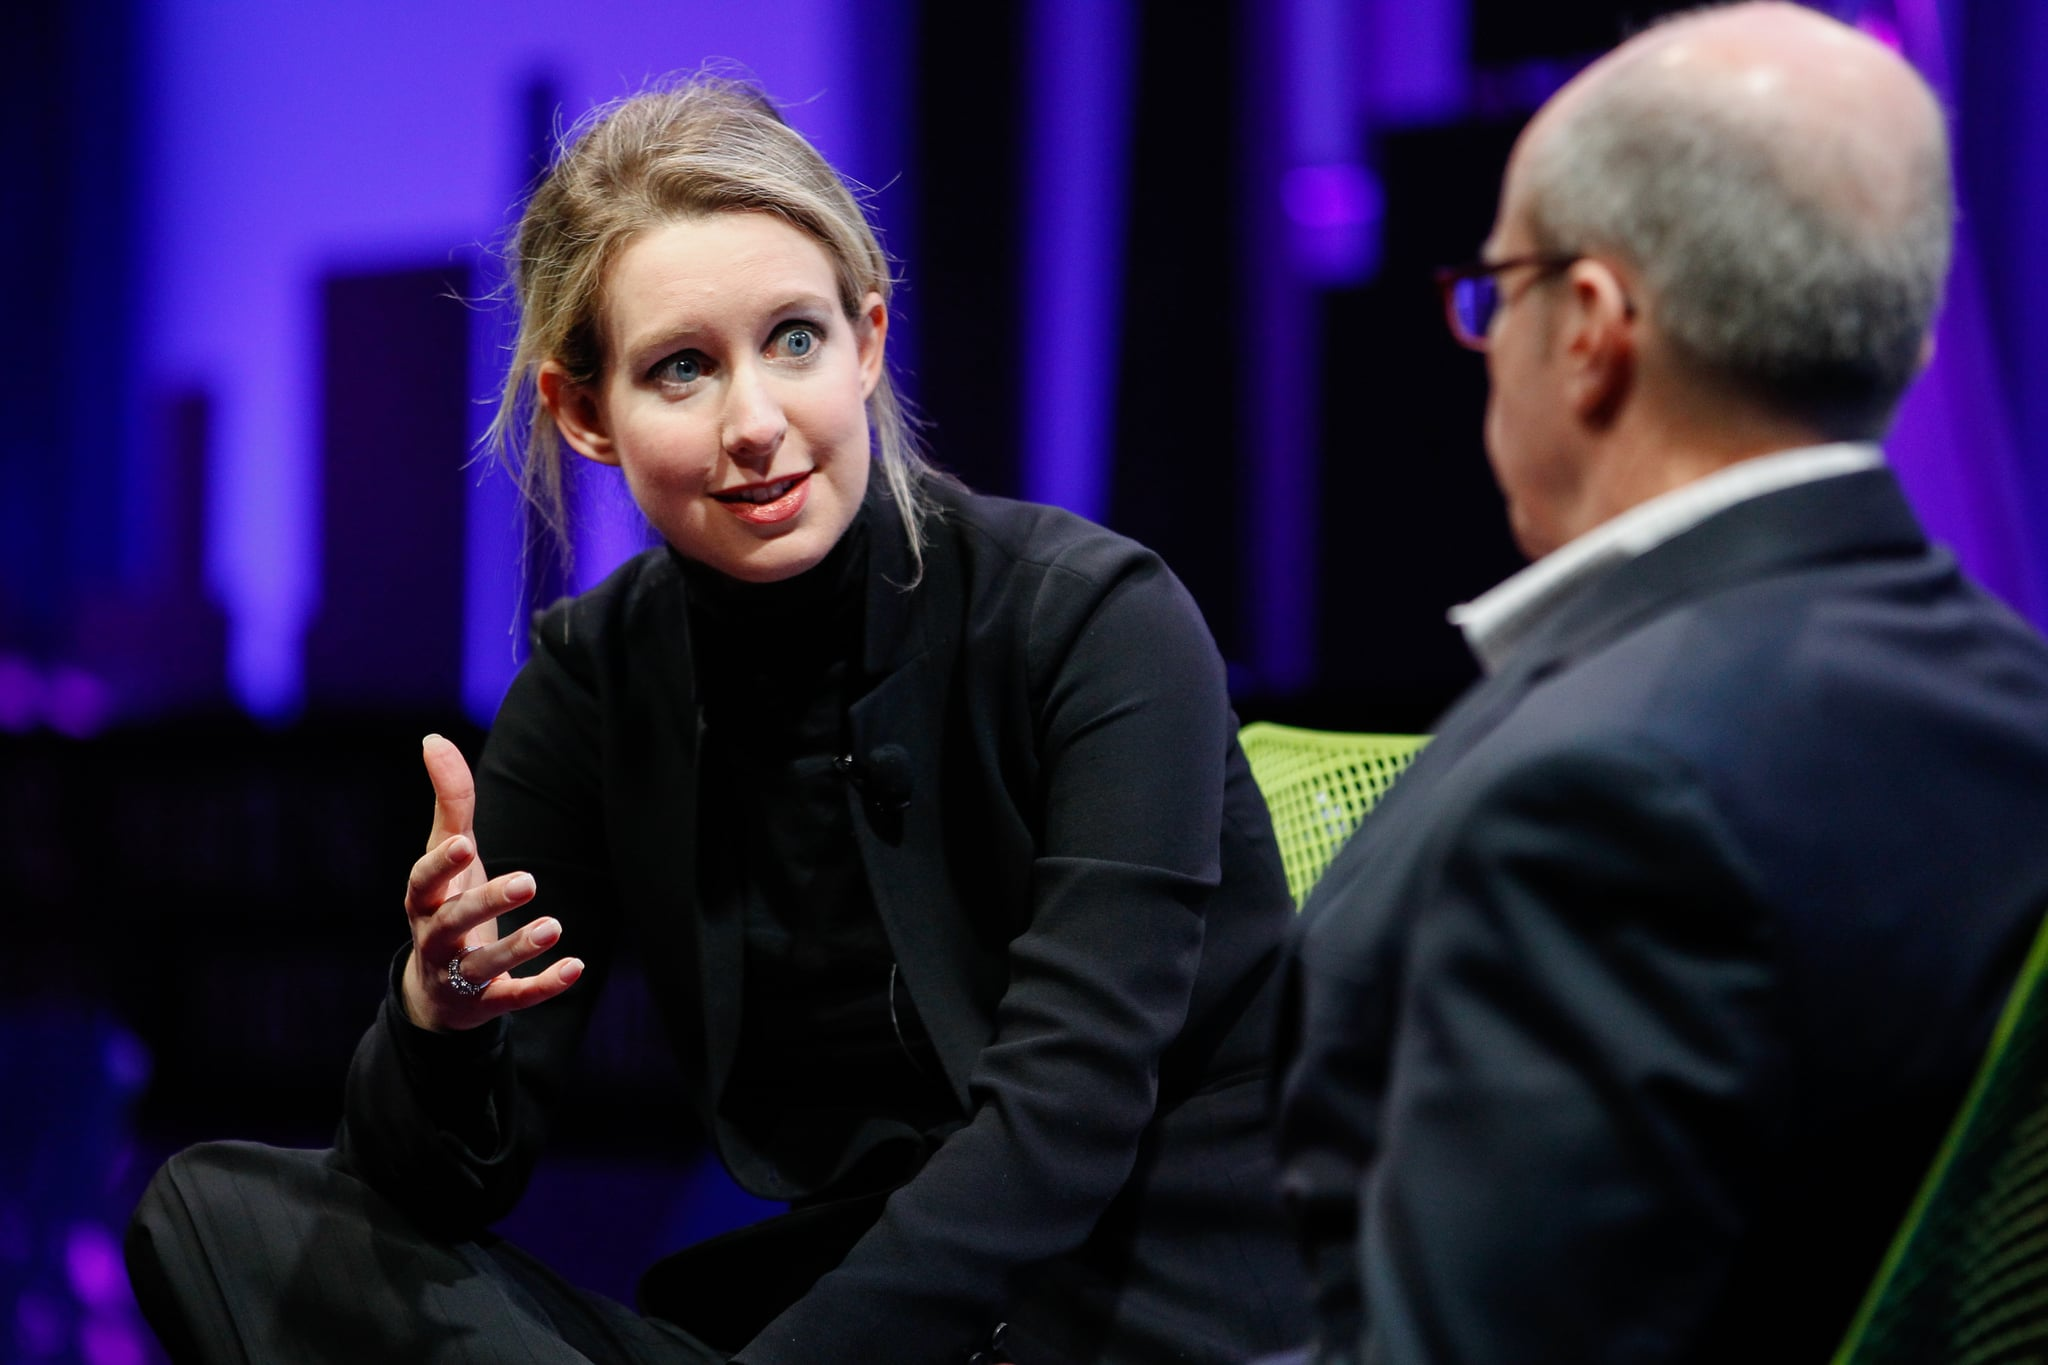 SAN FRANCISCO, CA - NOVEMBER 02:  Elizabeth Holmes (L) and Alan Murray speak at the Fortune Global Forum at the Fairmont Hotel on November 2, 2015 in San Francisco, California.  (Photo by Kimberly White/Getty Images for Fortune)